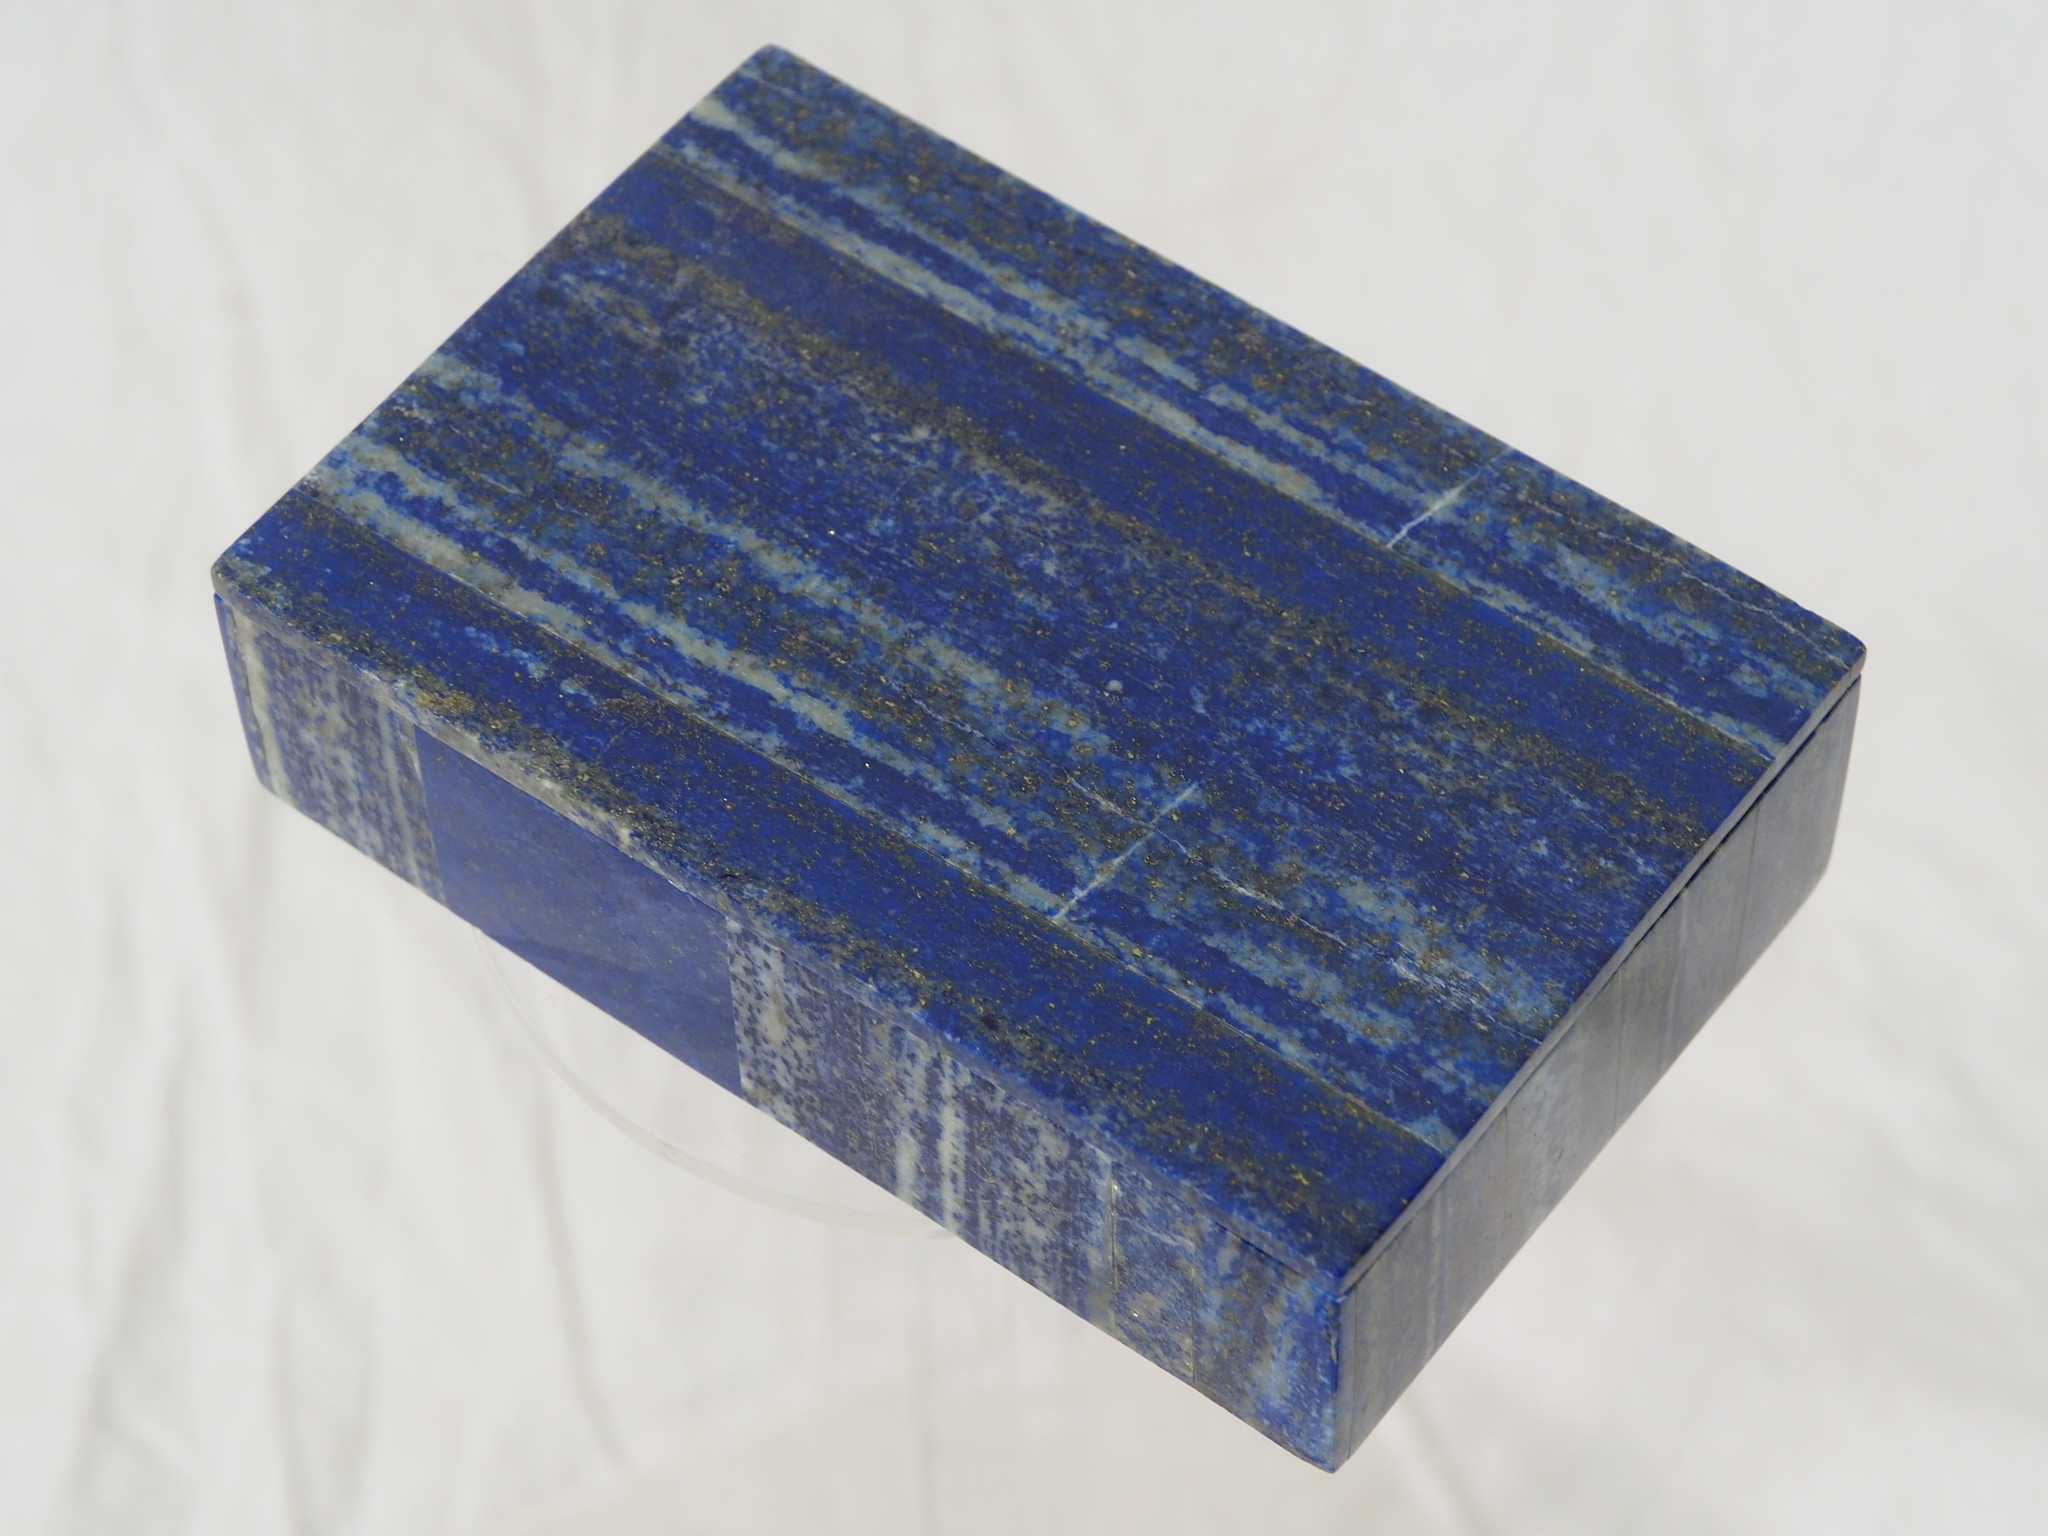 Hand Crafted stunning genuine Afghan Lapis Lazuli Gemstone  Box   from Afghanistan No:     21/G